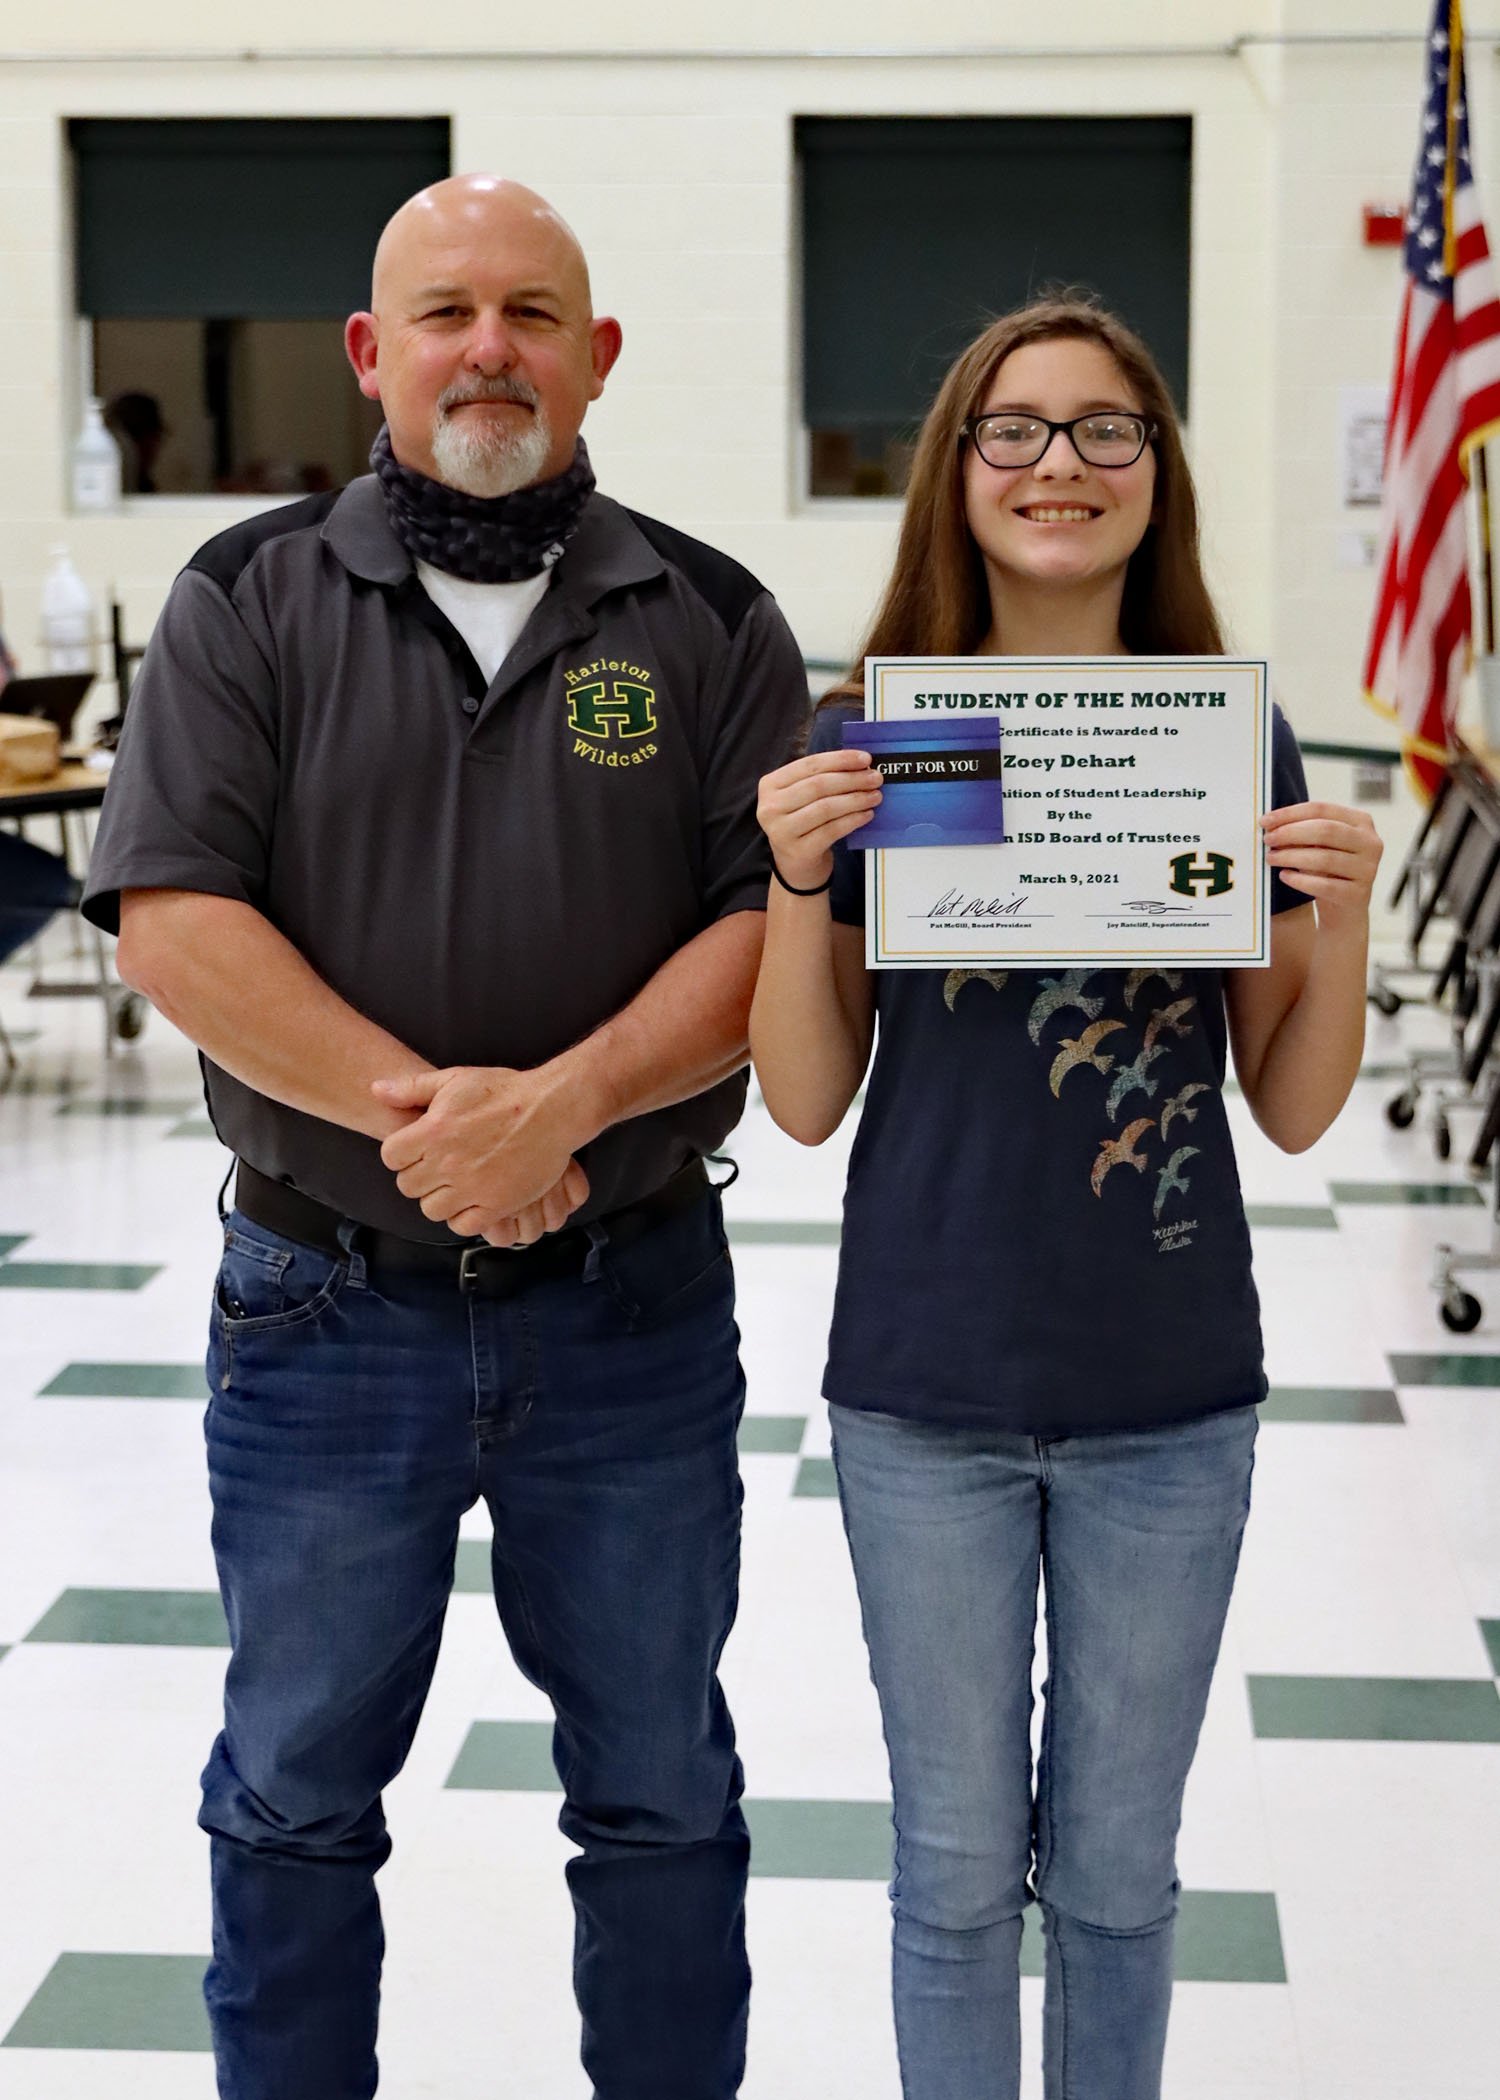 March Student of the Month Zoey Dehart!